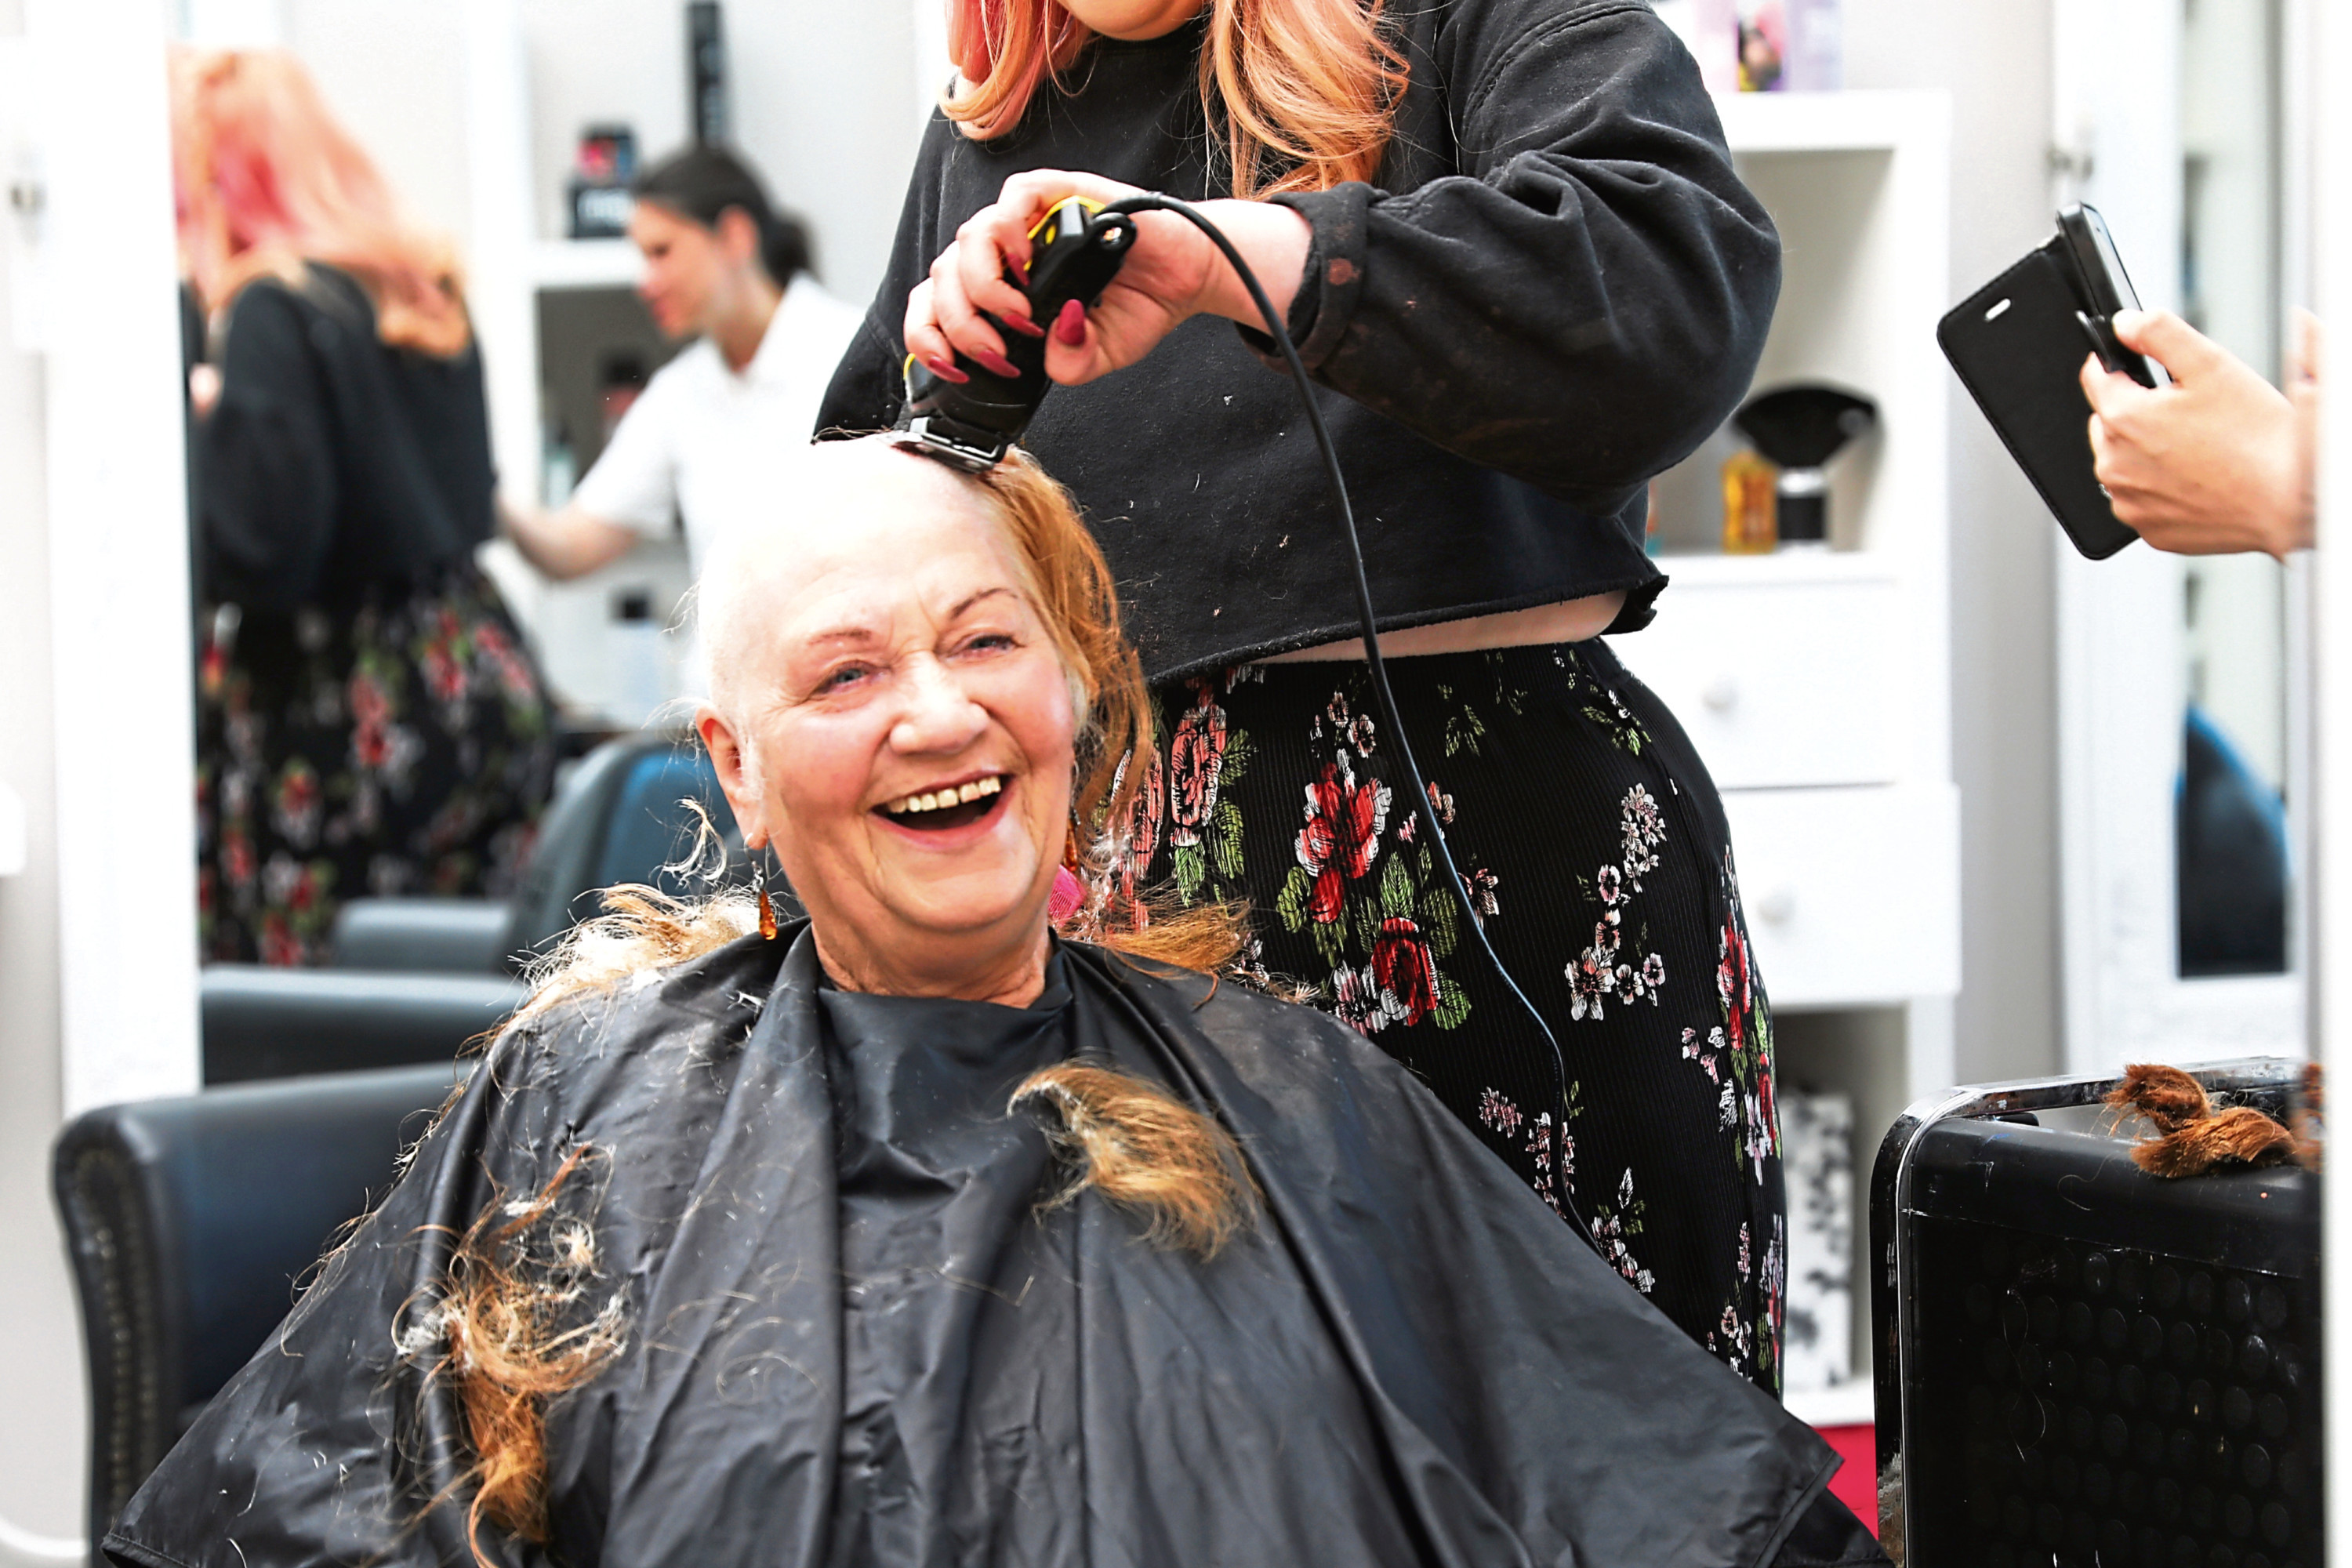 Picture shows Melba smiling as her waist-length hair is shaved off.